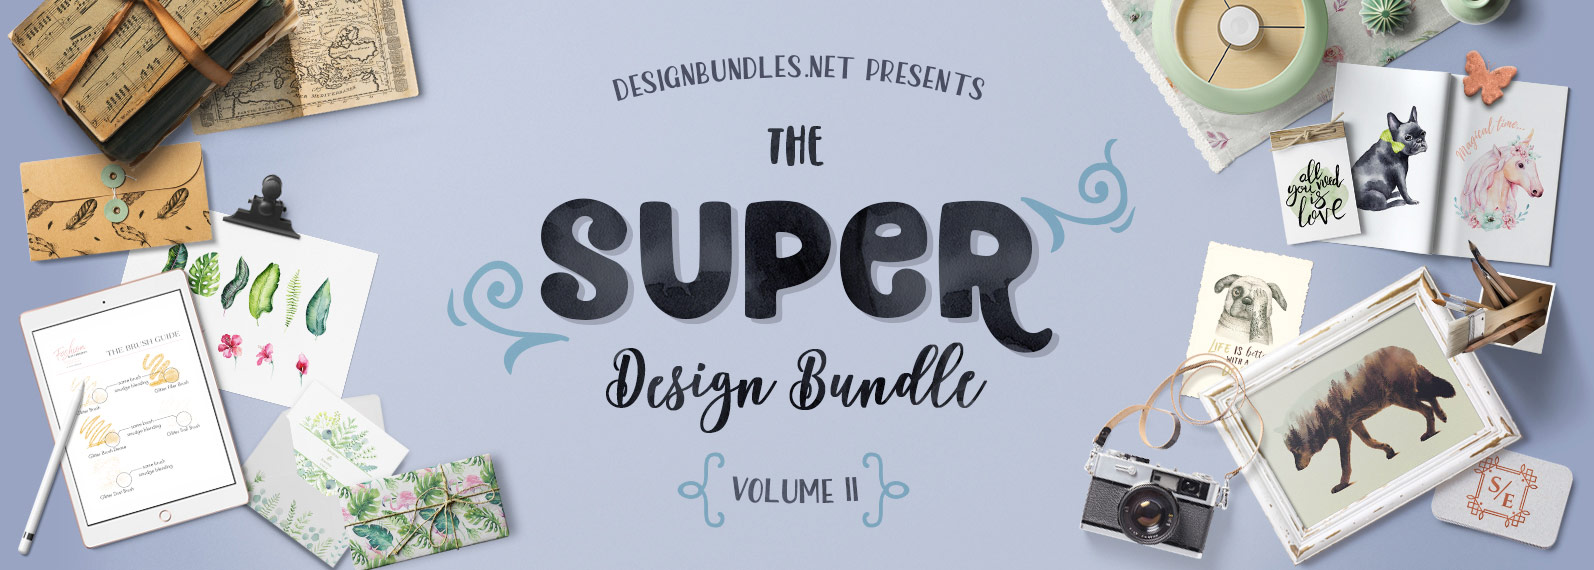 The-Super-Design-Bundle-Vol-II-Cover.jpg